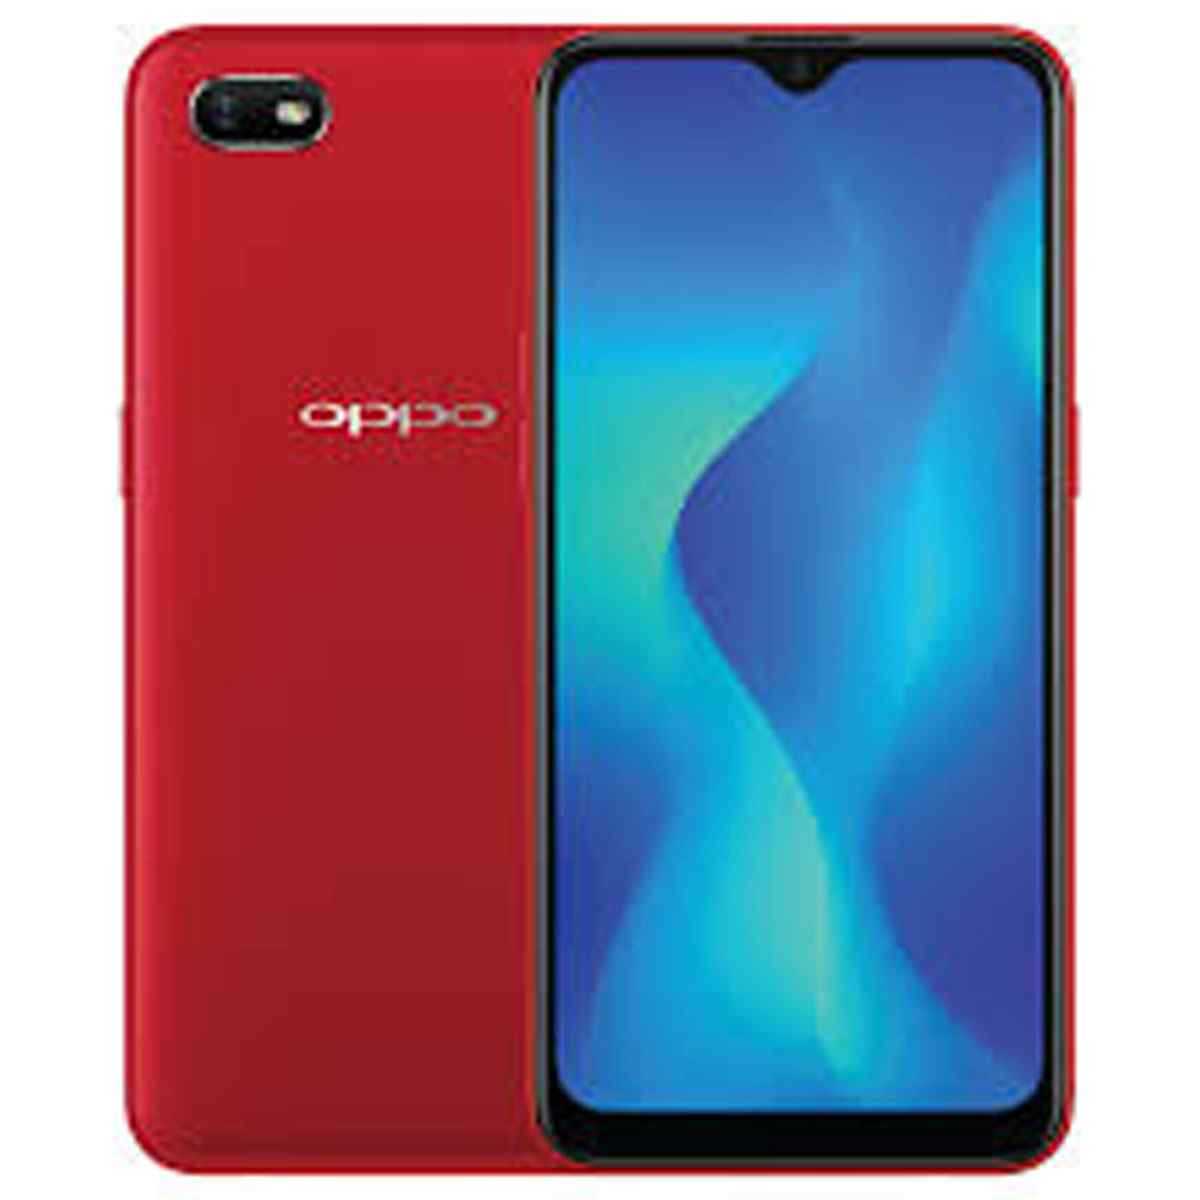 Latest Price List of Oppo Mobile Phones in Pakistan | PriceOye